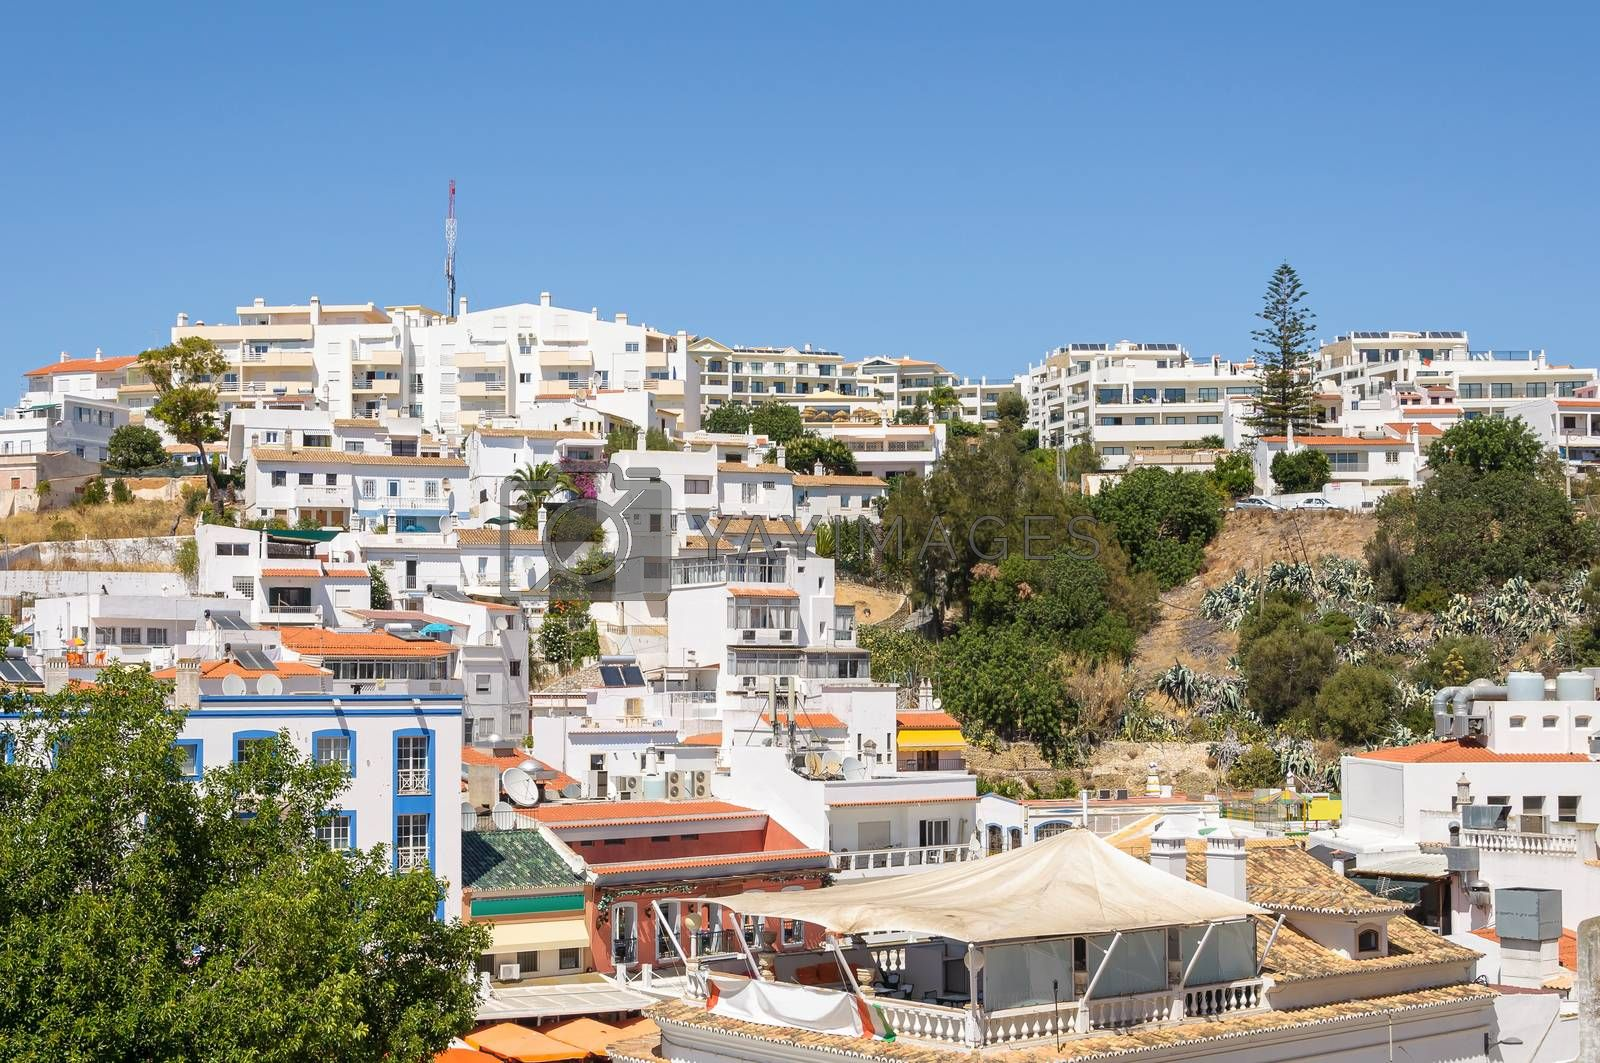 Royalty free image of Residential buildings of Albufeira town in Portugal by mkos83